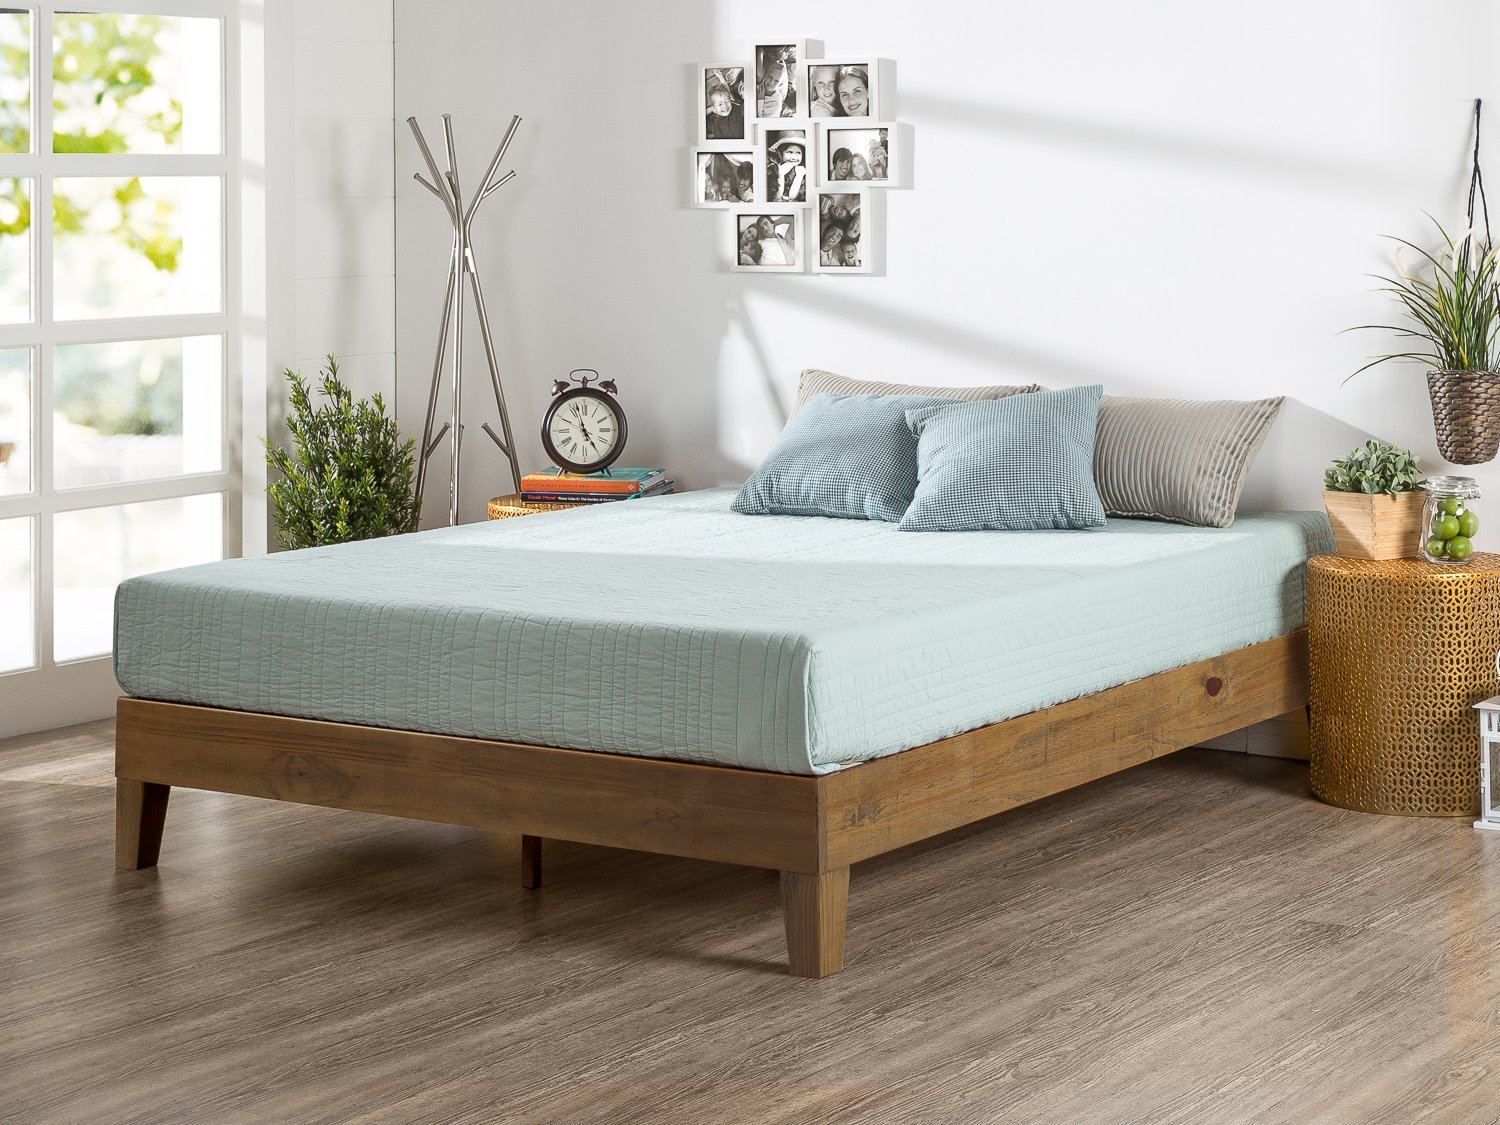 Zinus Alexis 12 Inch Deluxe Wood Platform Bed / No Box Spring Needed / Wood Slat Support / Rustic Pine Finish, King by Zinus